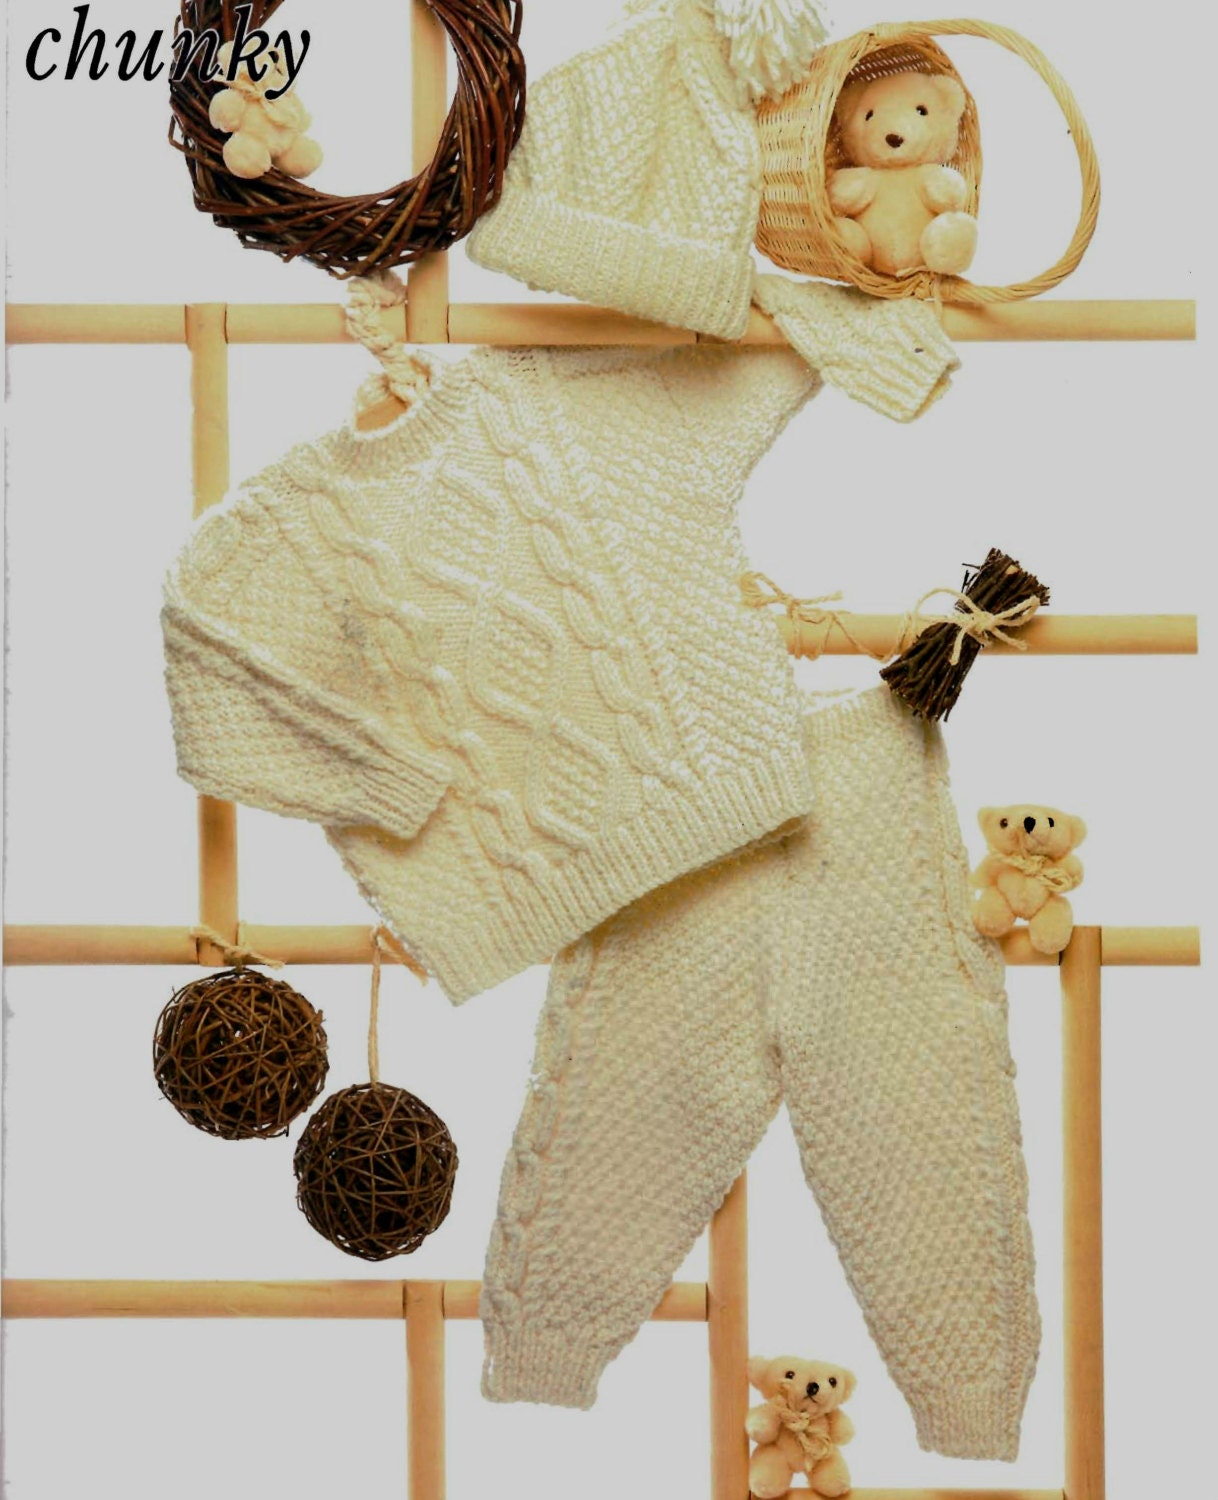 Vintage Knitting Patterns Baby Hats : Vintage Knitting Pattern Babies Aran Sweater Leggings Hat